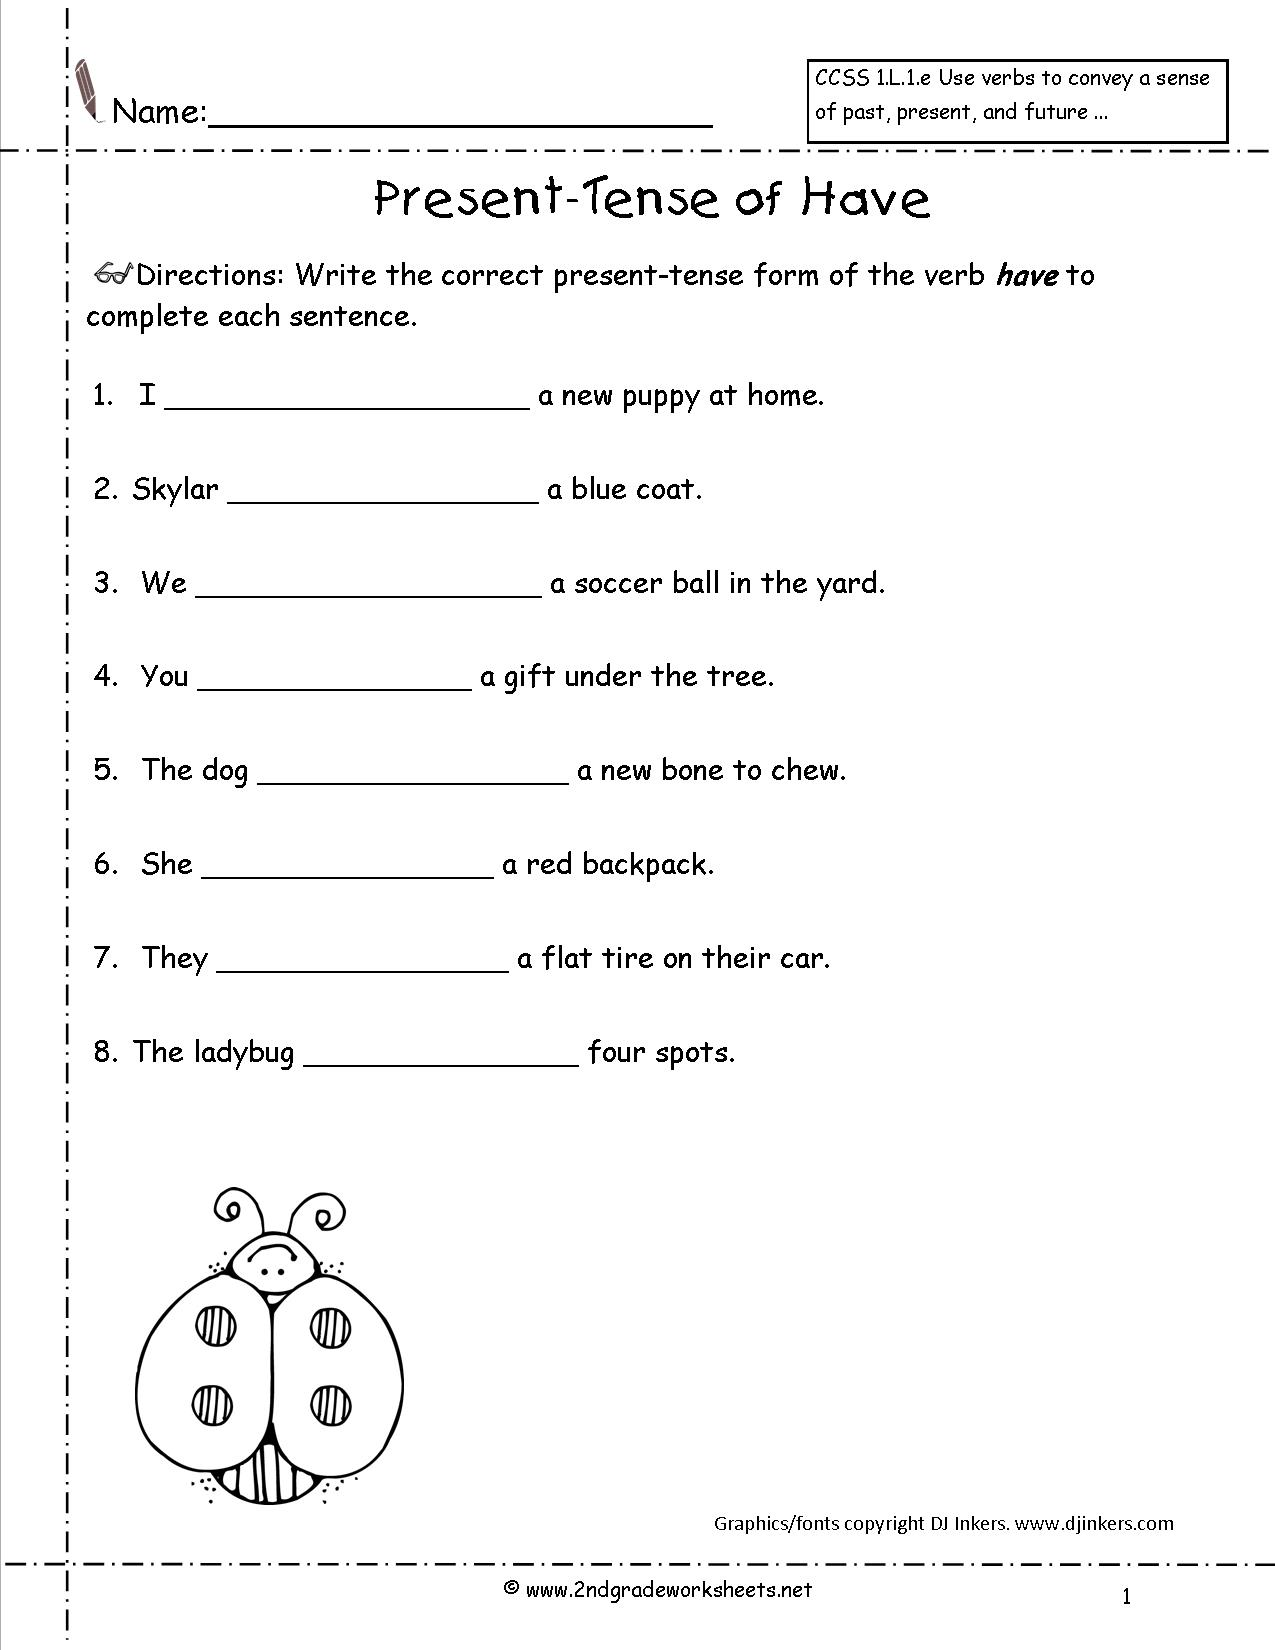 Present Tense Verbs Activities